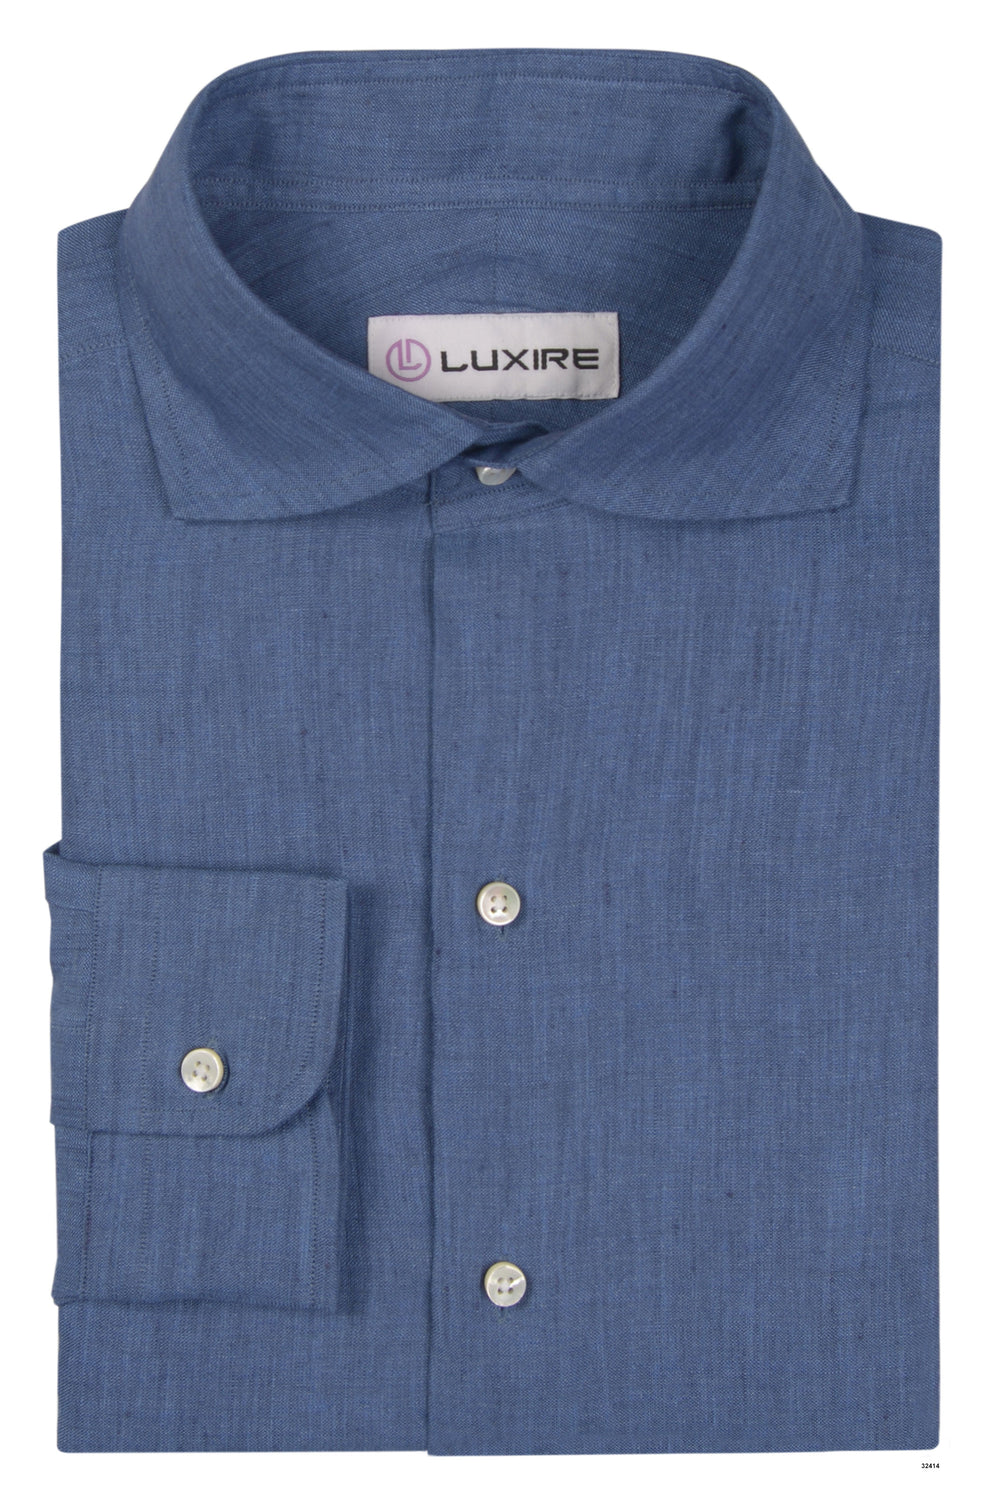 Cornflower Blue 100% linen Shirt